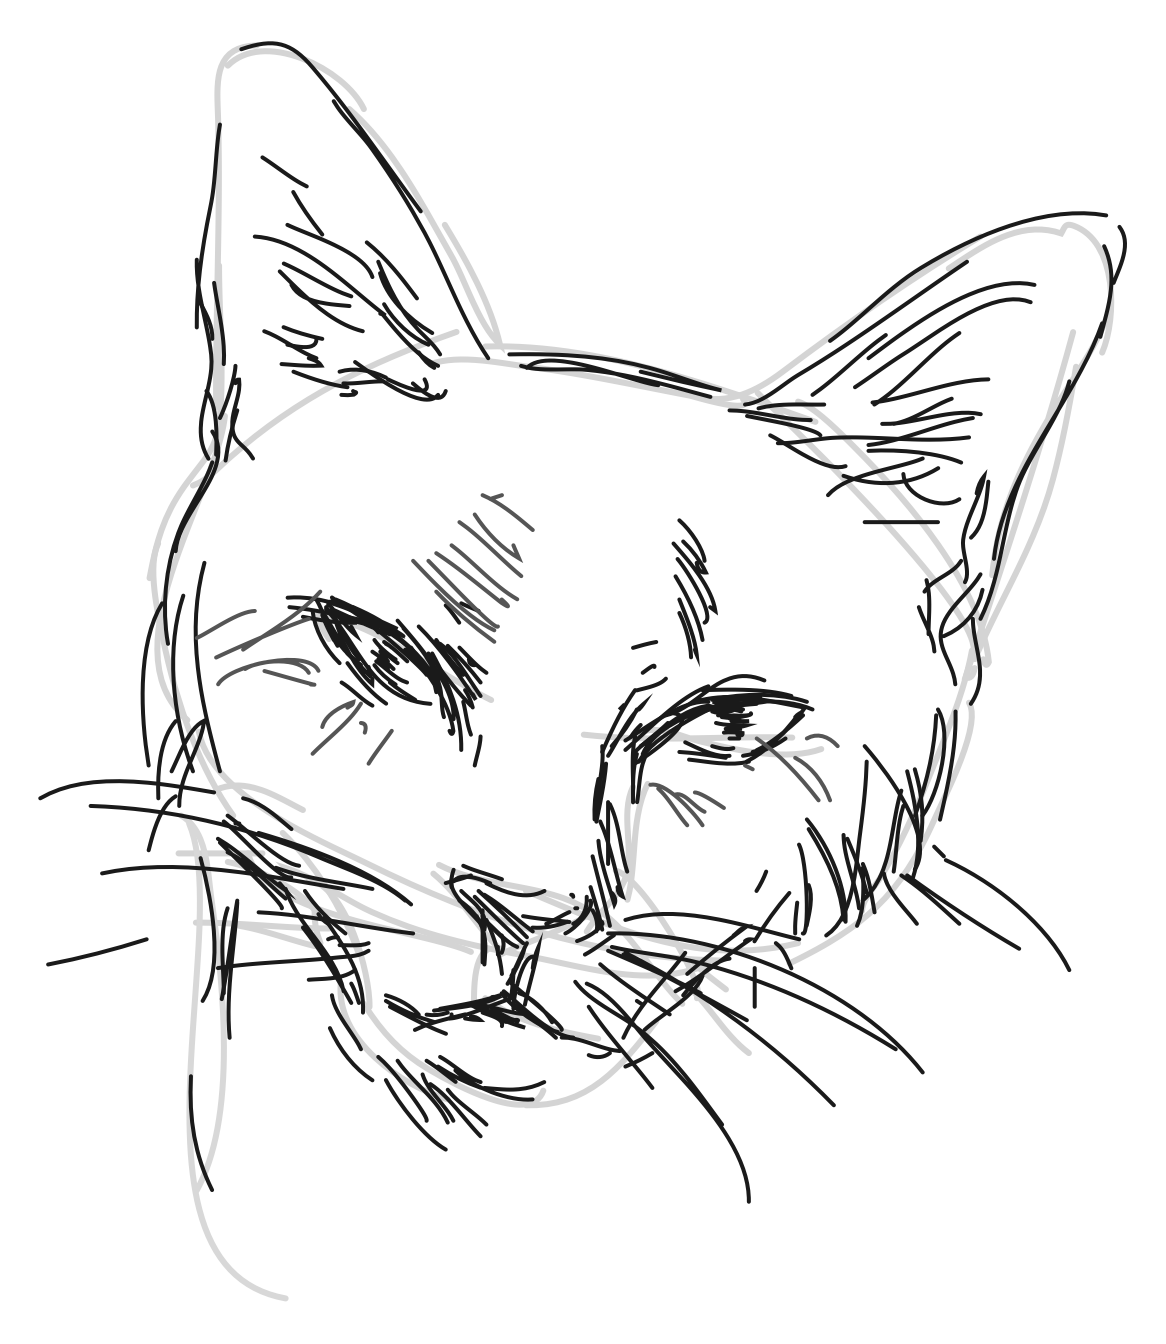 ShadowDraw® teaches YOU how to draw this in minutes